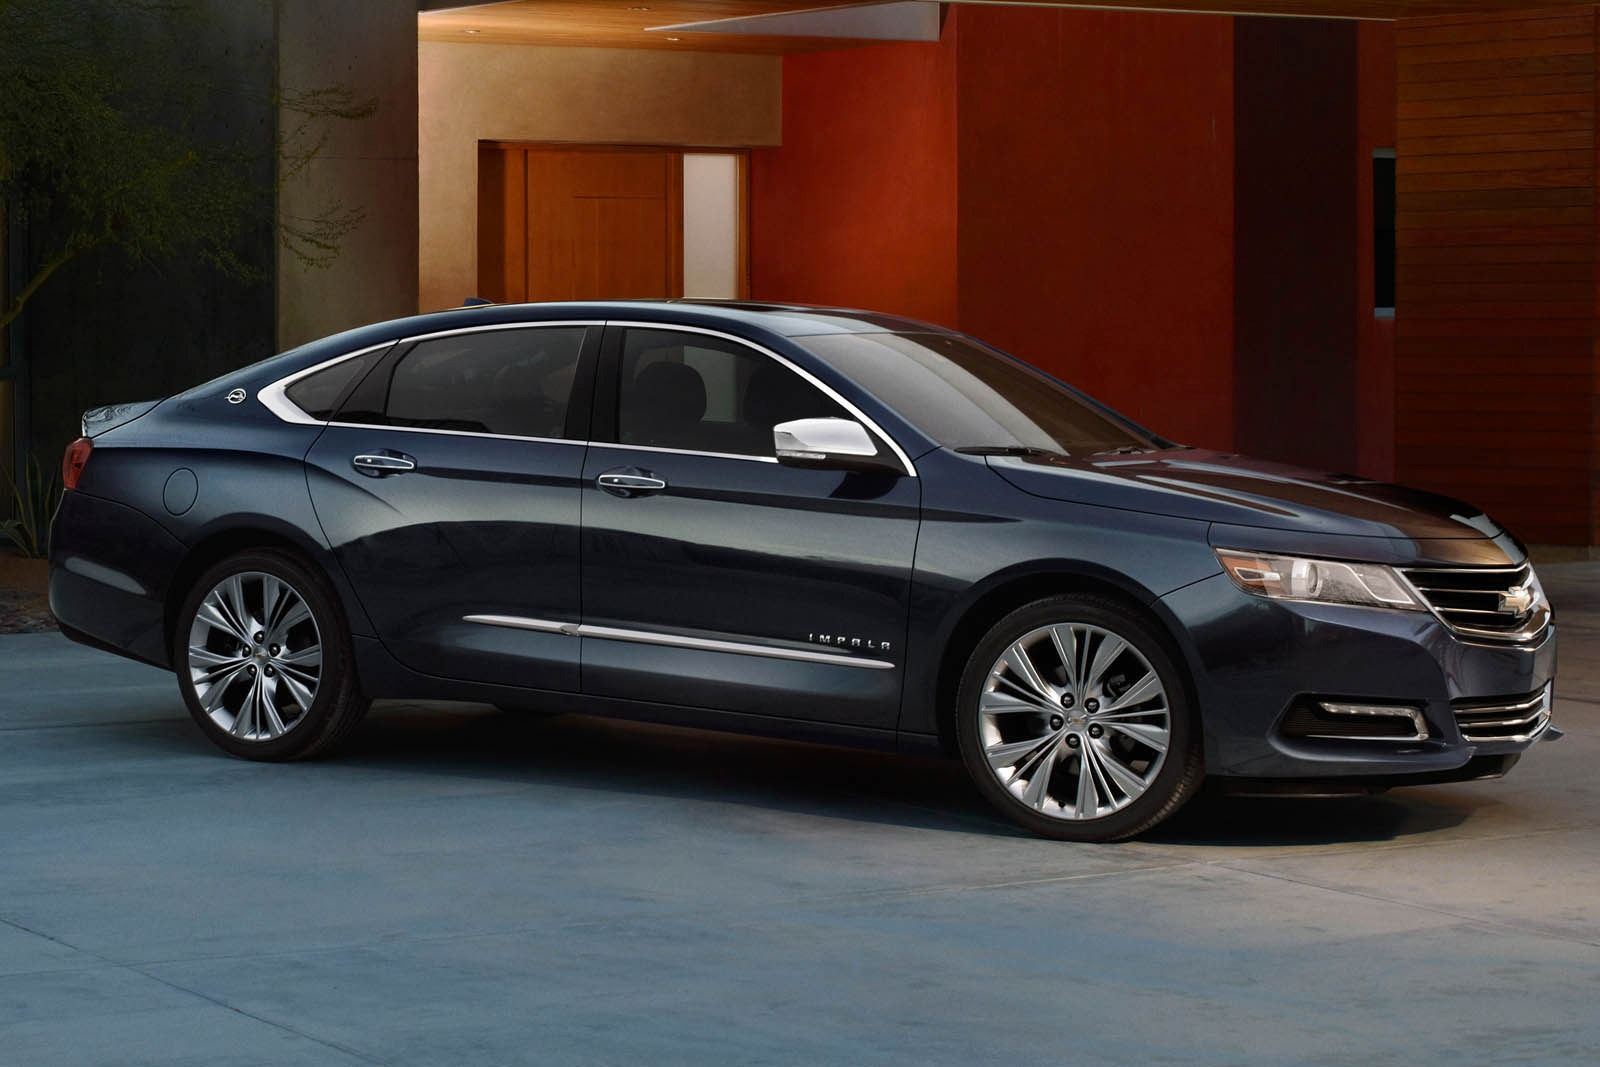 2015 Chevrolet Impala – pictures, information and specs - Auto ...